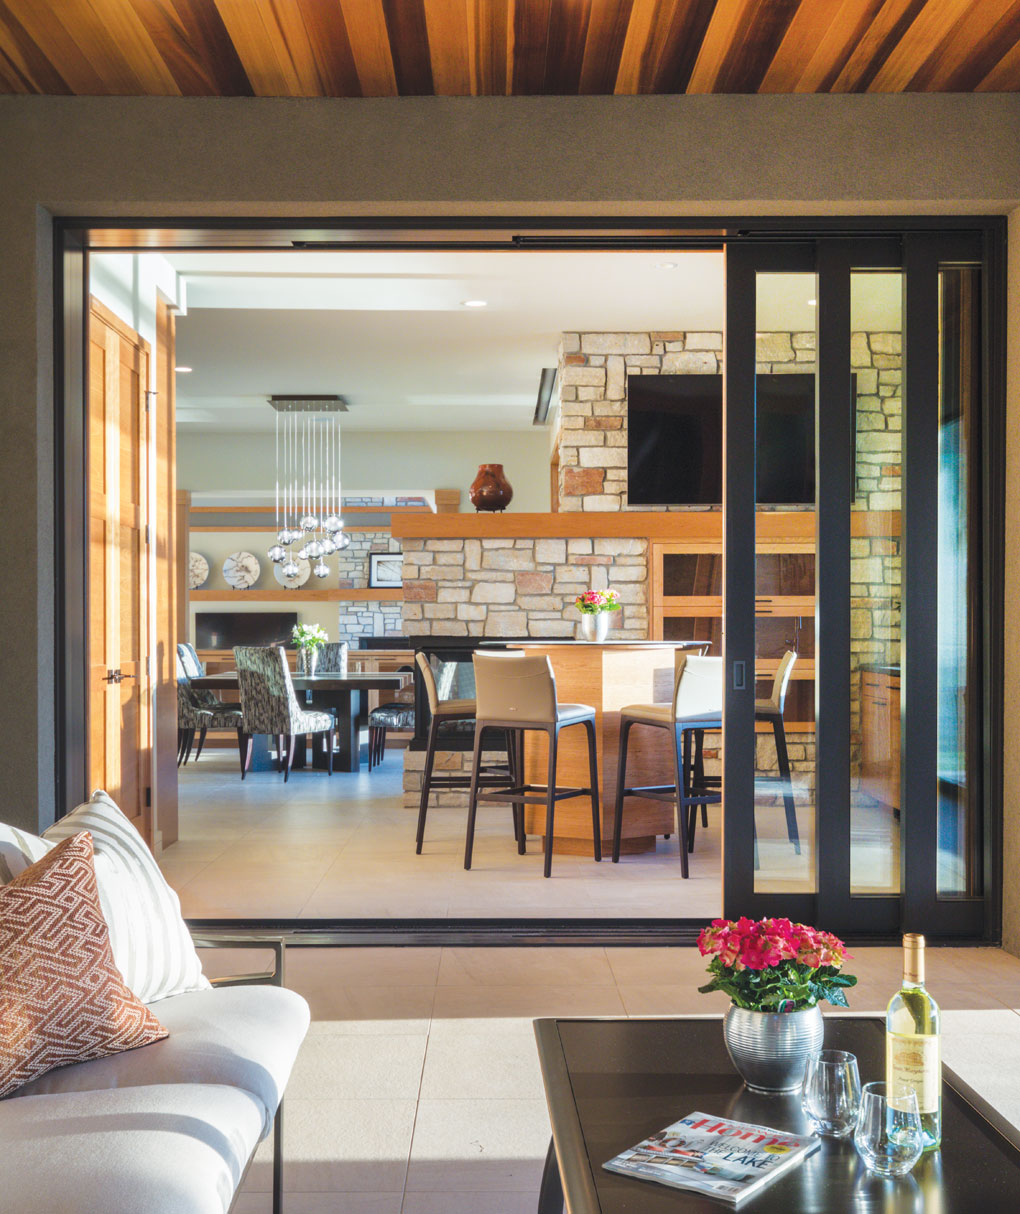 A three-sided Chilton stone fireplace divides the bar and dining area, while pocket doors disappear into the wall between house and screen porch.